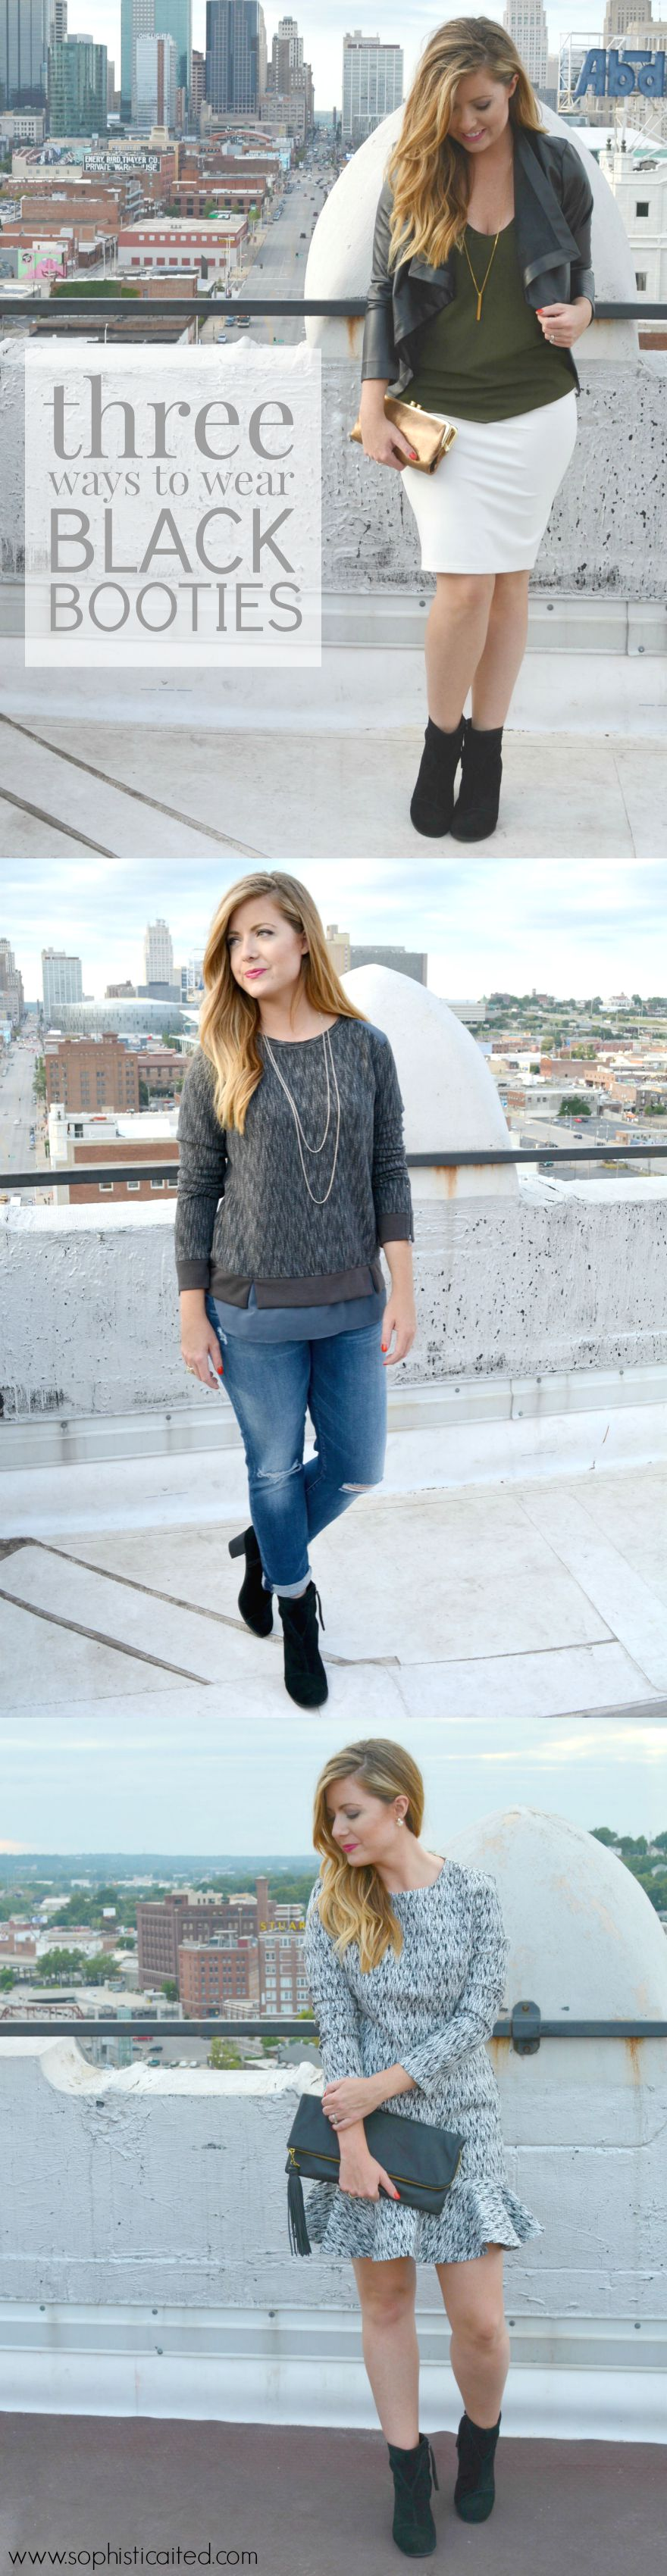 three ways to wear black booties this fall